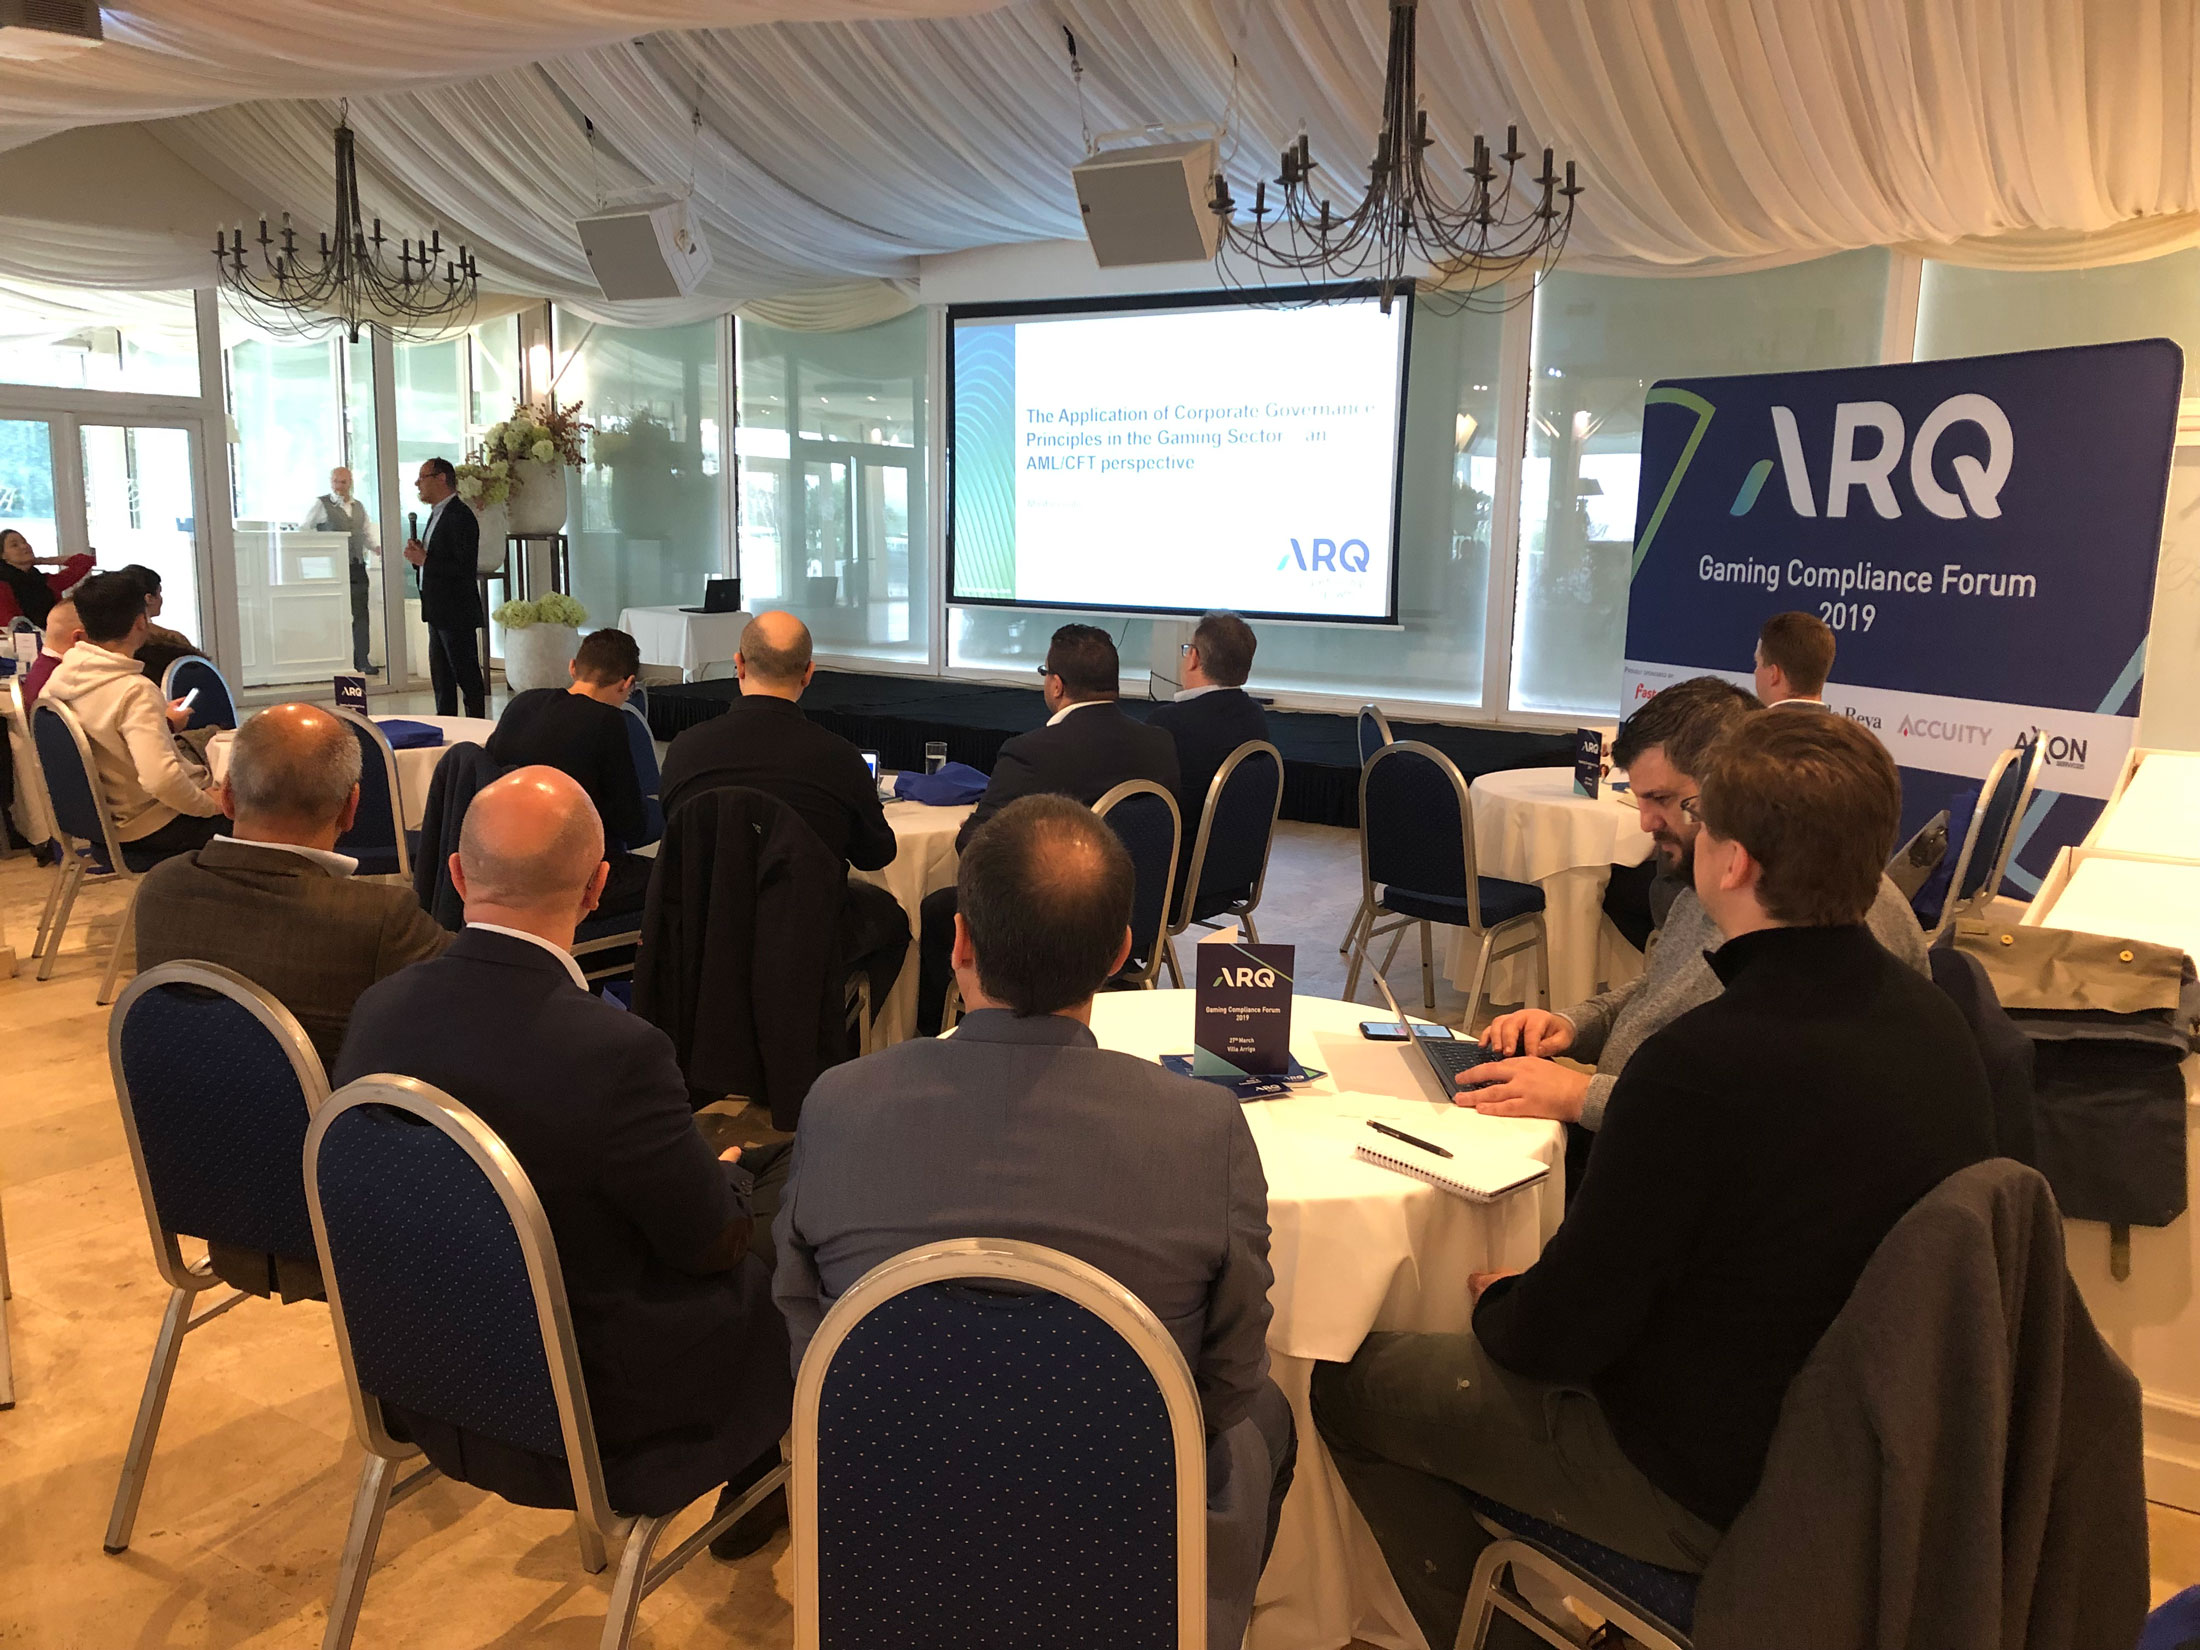 ARQ hosts their first Gaming Compliance Forum for 2019 at Villa